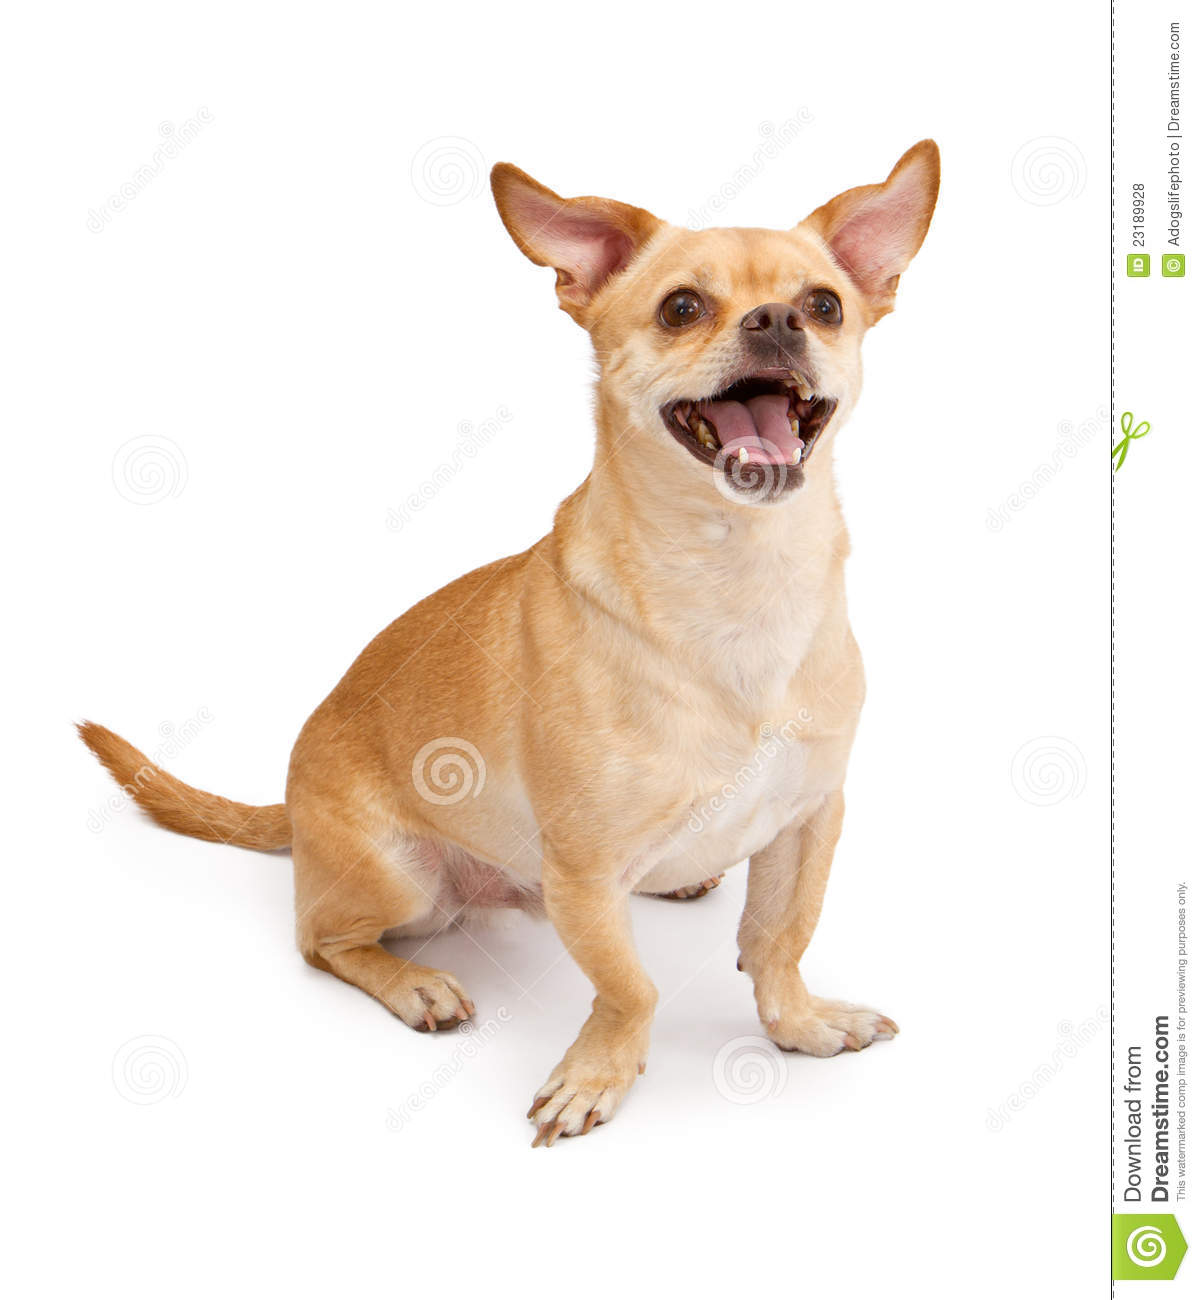 ... similar stock images of ` Happy Chihuahua and Pug Mix Dog Smiling